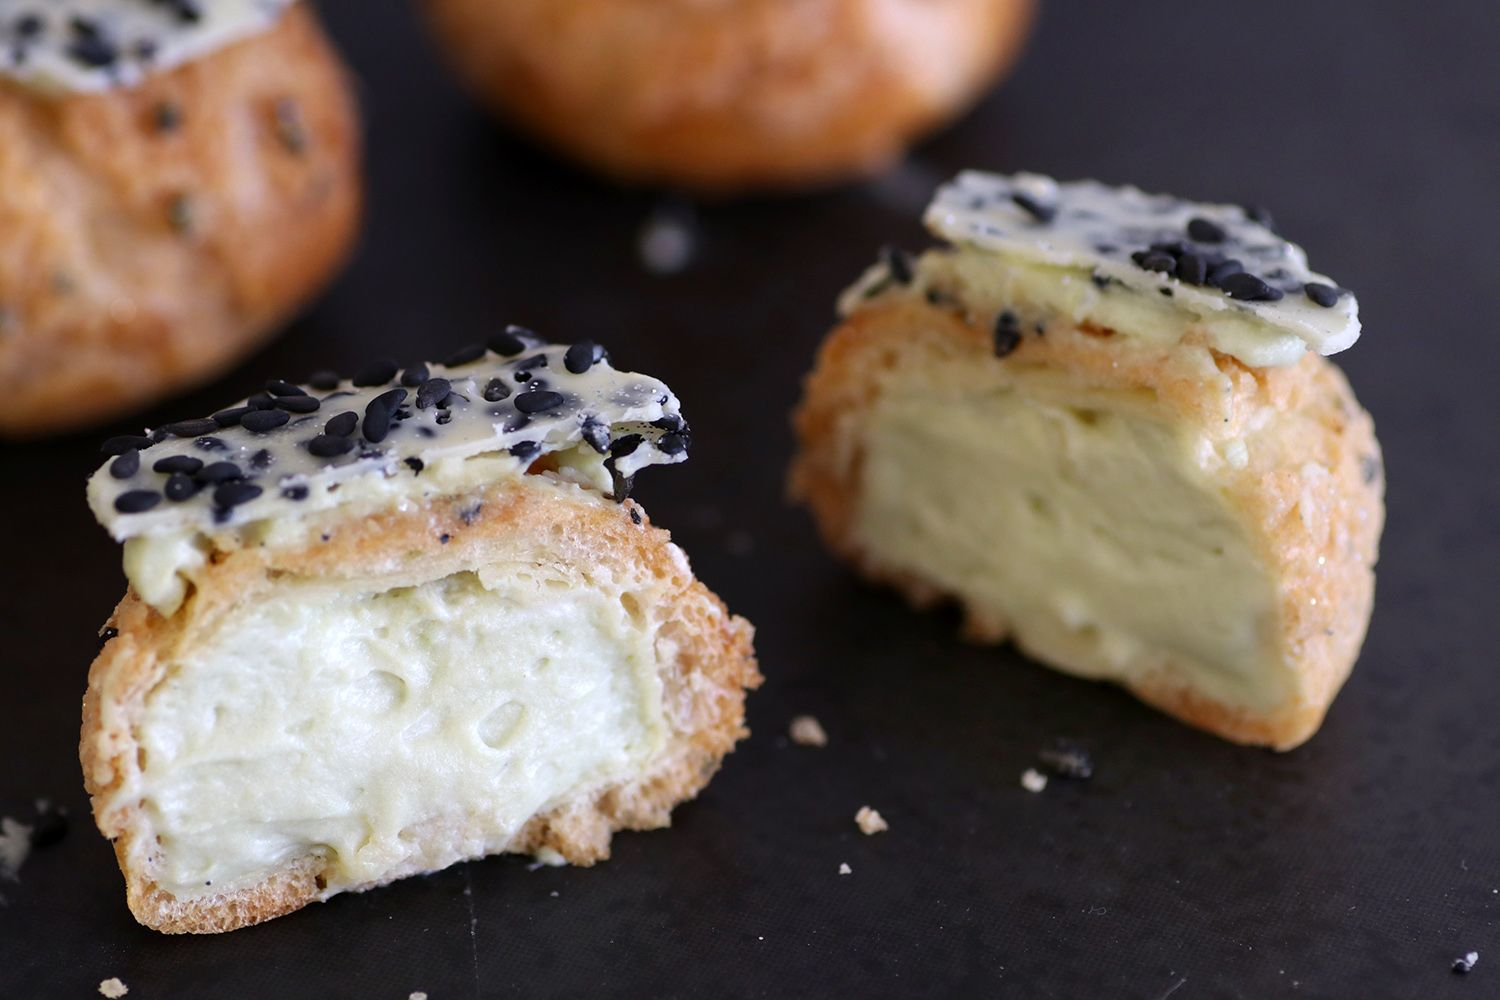 Matcha Cream Puffs with Black Sesame Crumble